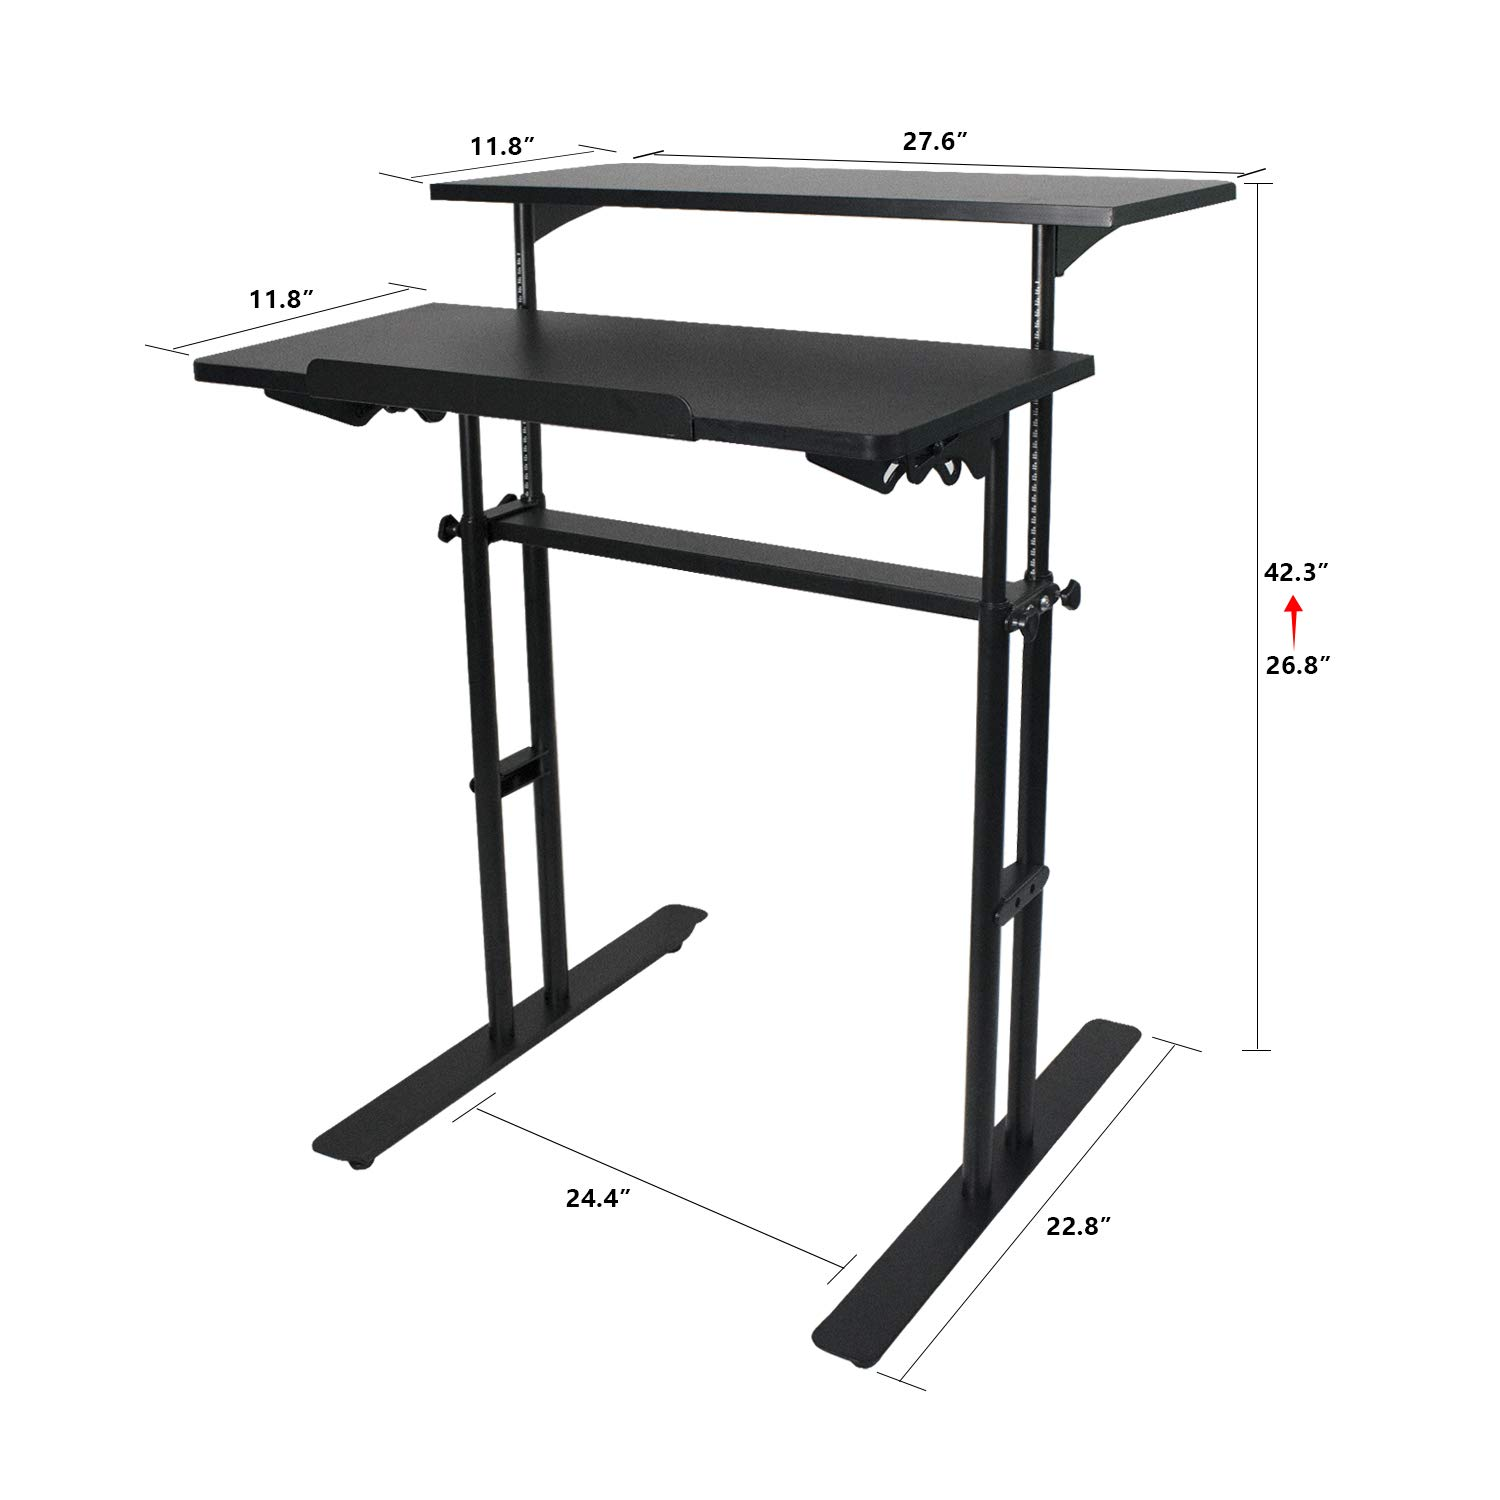 Heyesk Stand Up Desk Height Adjustable Home Office Desk with Standing (Black) by heyesk (Image #6)